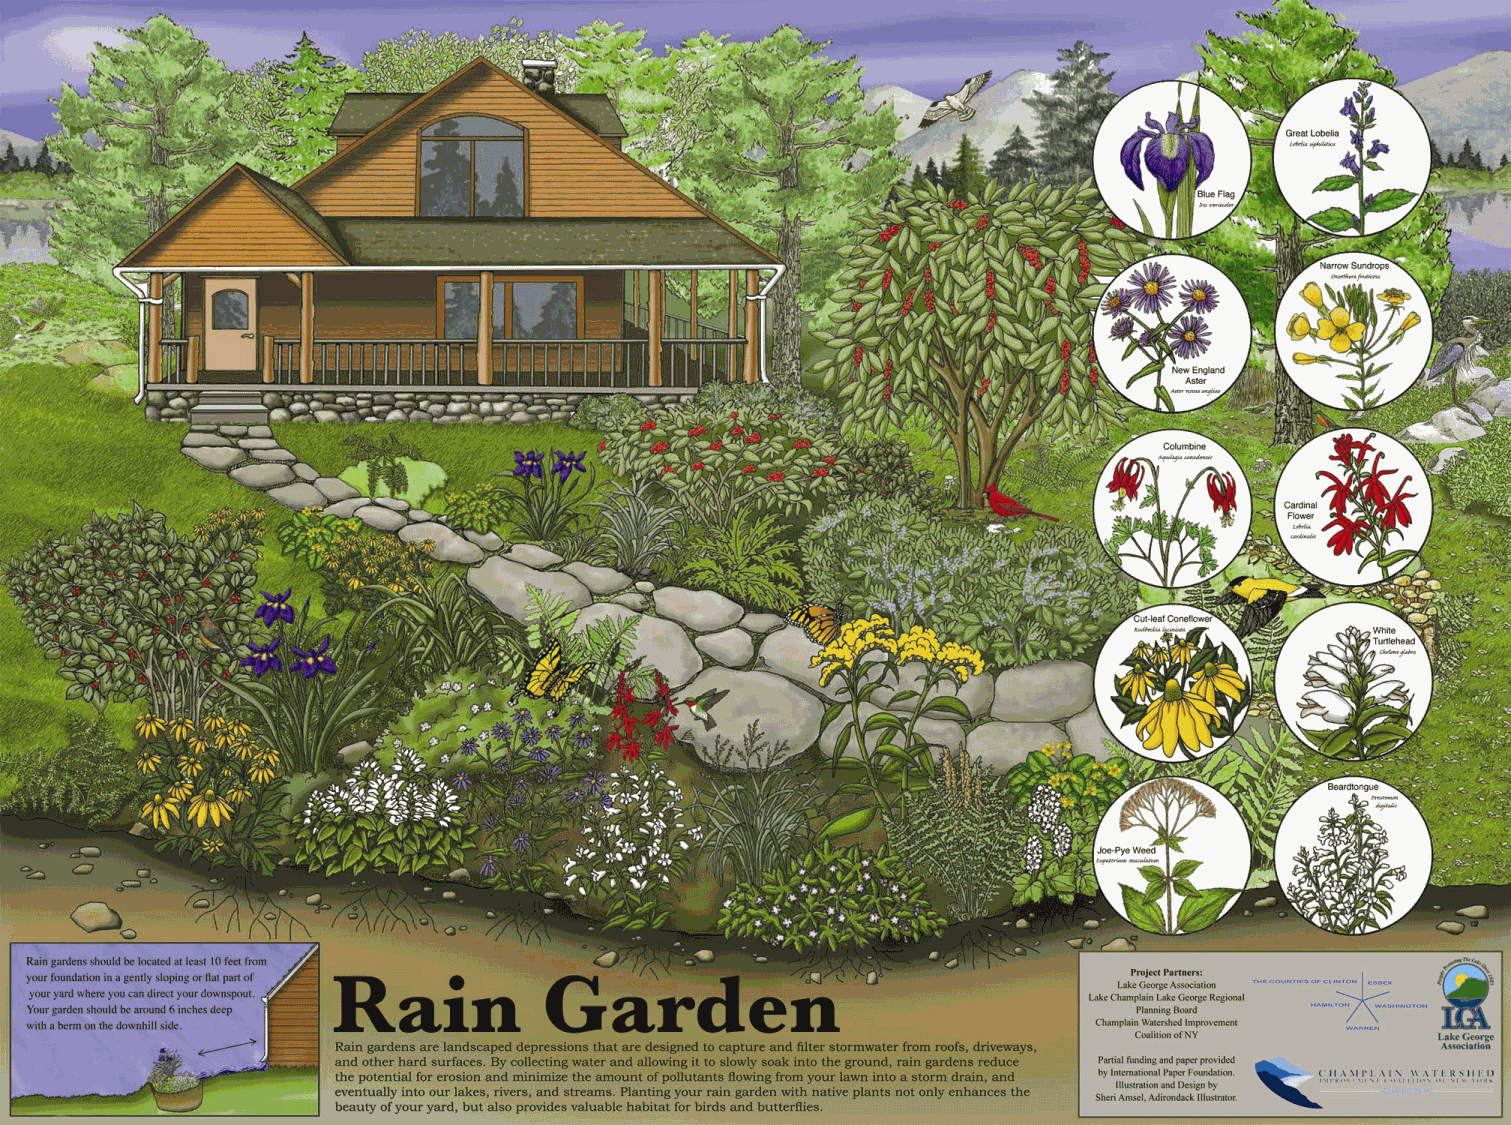 Rain Garden Design rain garden diagram Photos Of Rain Gardens New Rain Garden Poster And Presentation